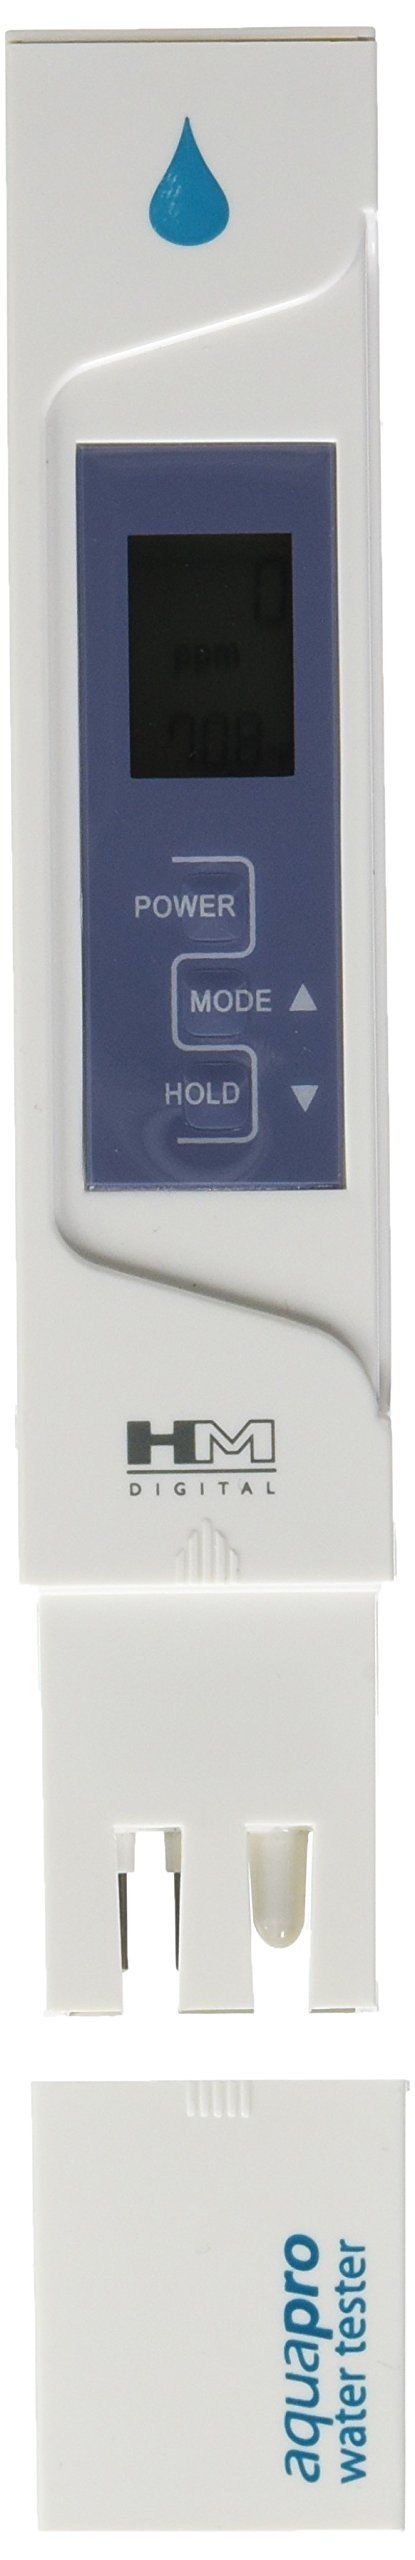 HM Digital AP-1 AquaPro Water Quality Total Dissolved Solids Tester, 0-5000 ppm TDS Range, 1 ppm Resolution, +/- 2% Readout Accuracy (Magnetic Body) by HM Digital